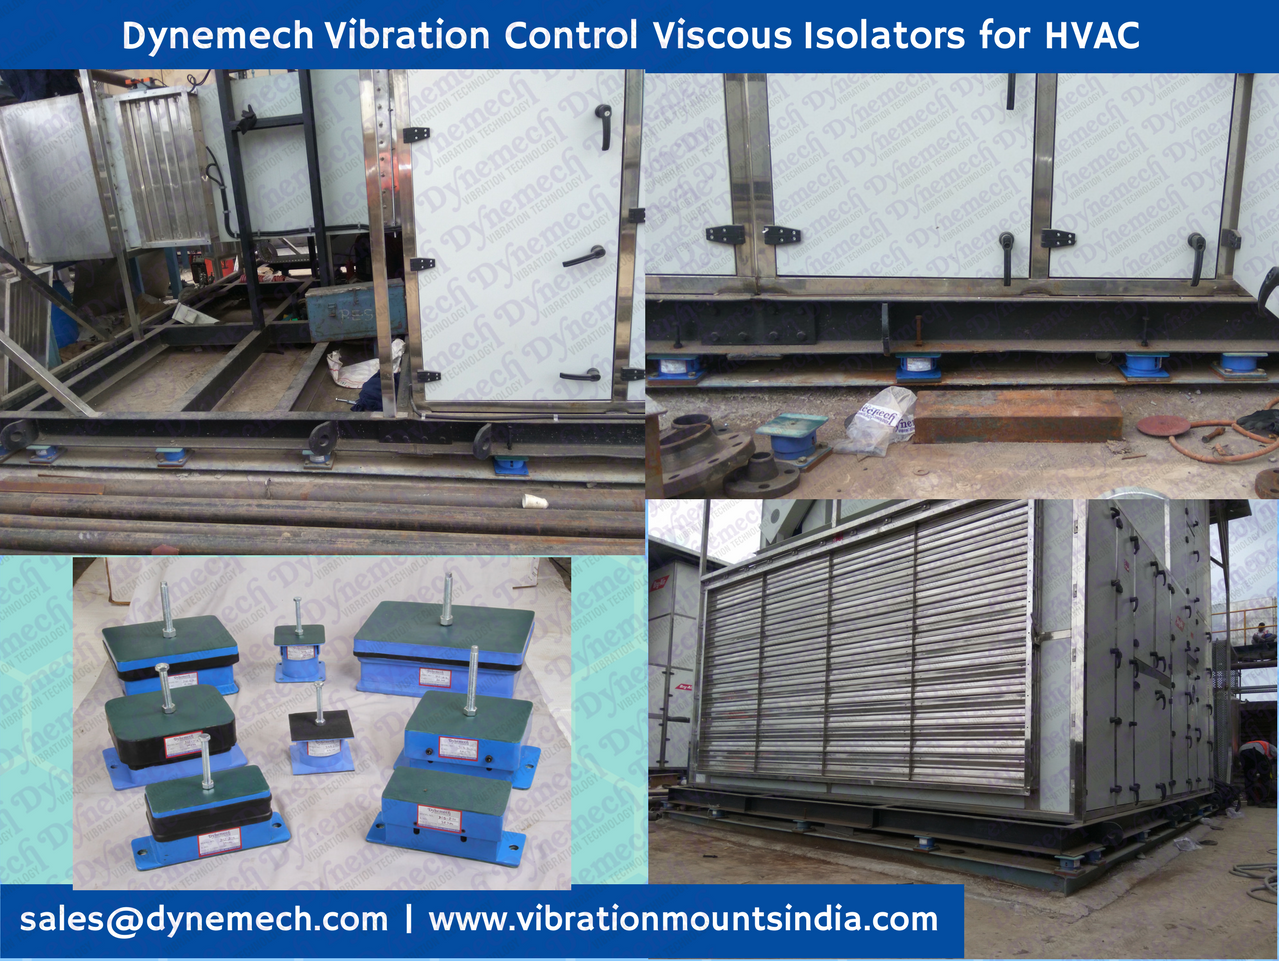 Vibration Isolation For Hvac Systems Dynemech Systems